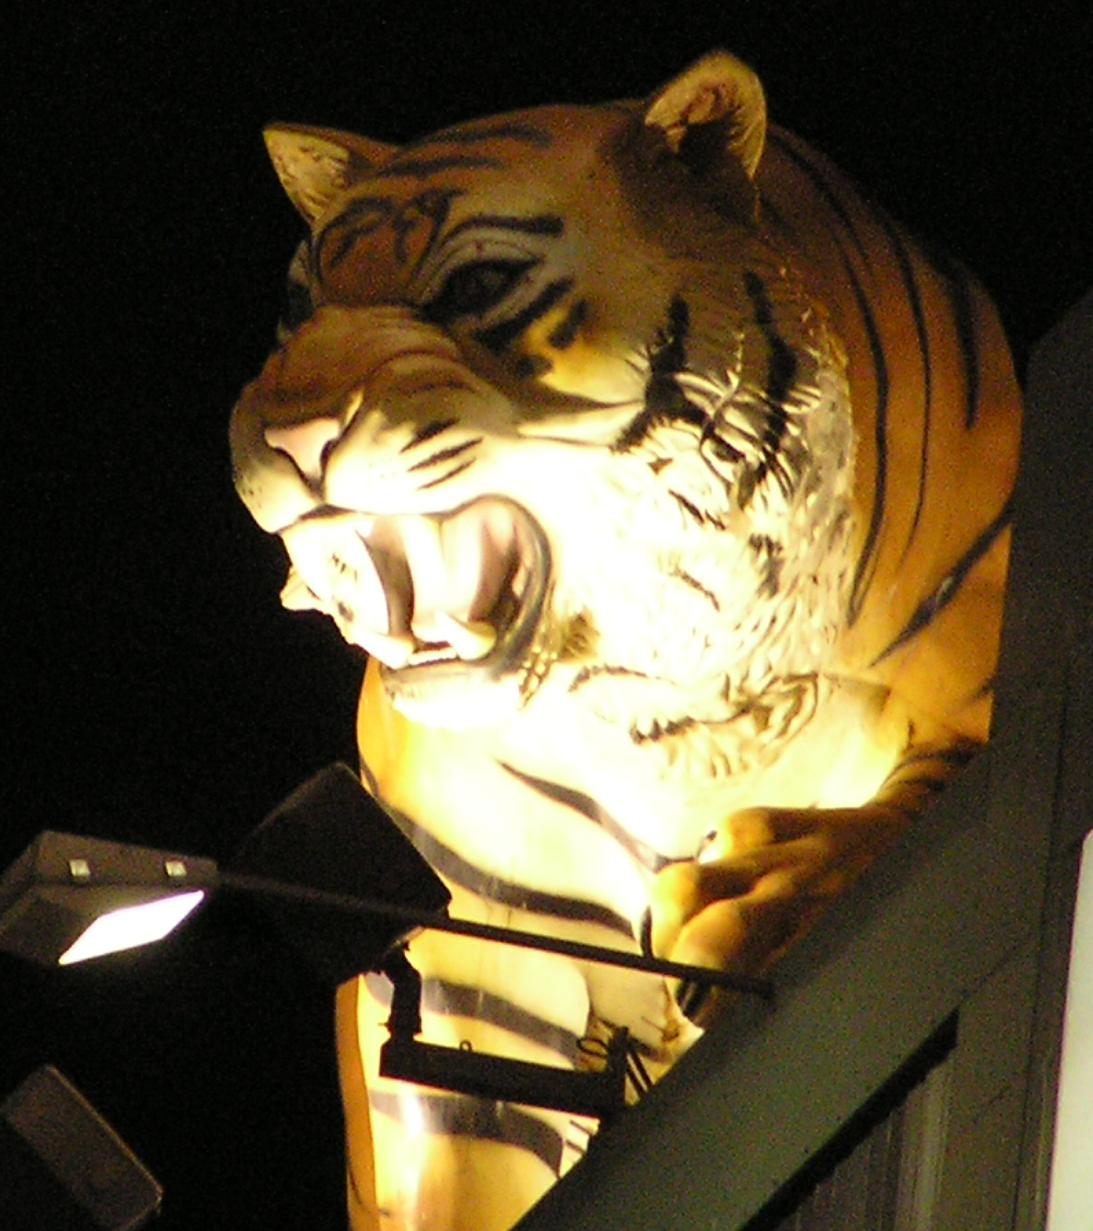 The Tiger on top of the board - Comerica Park